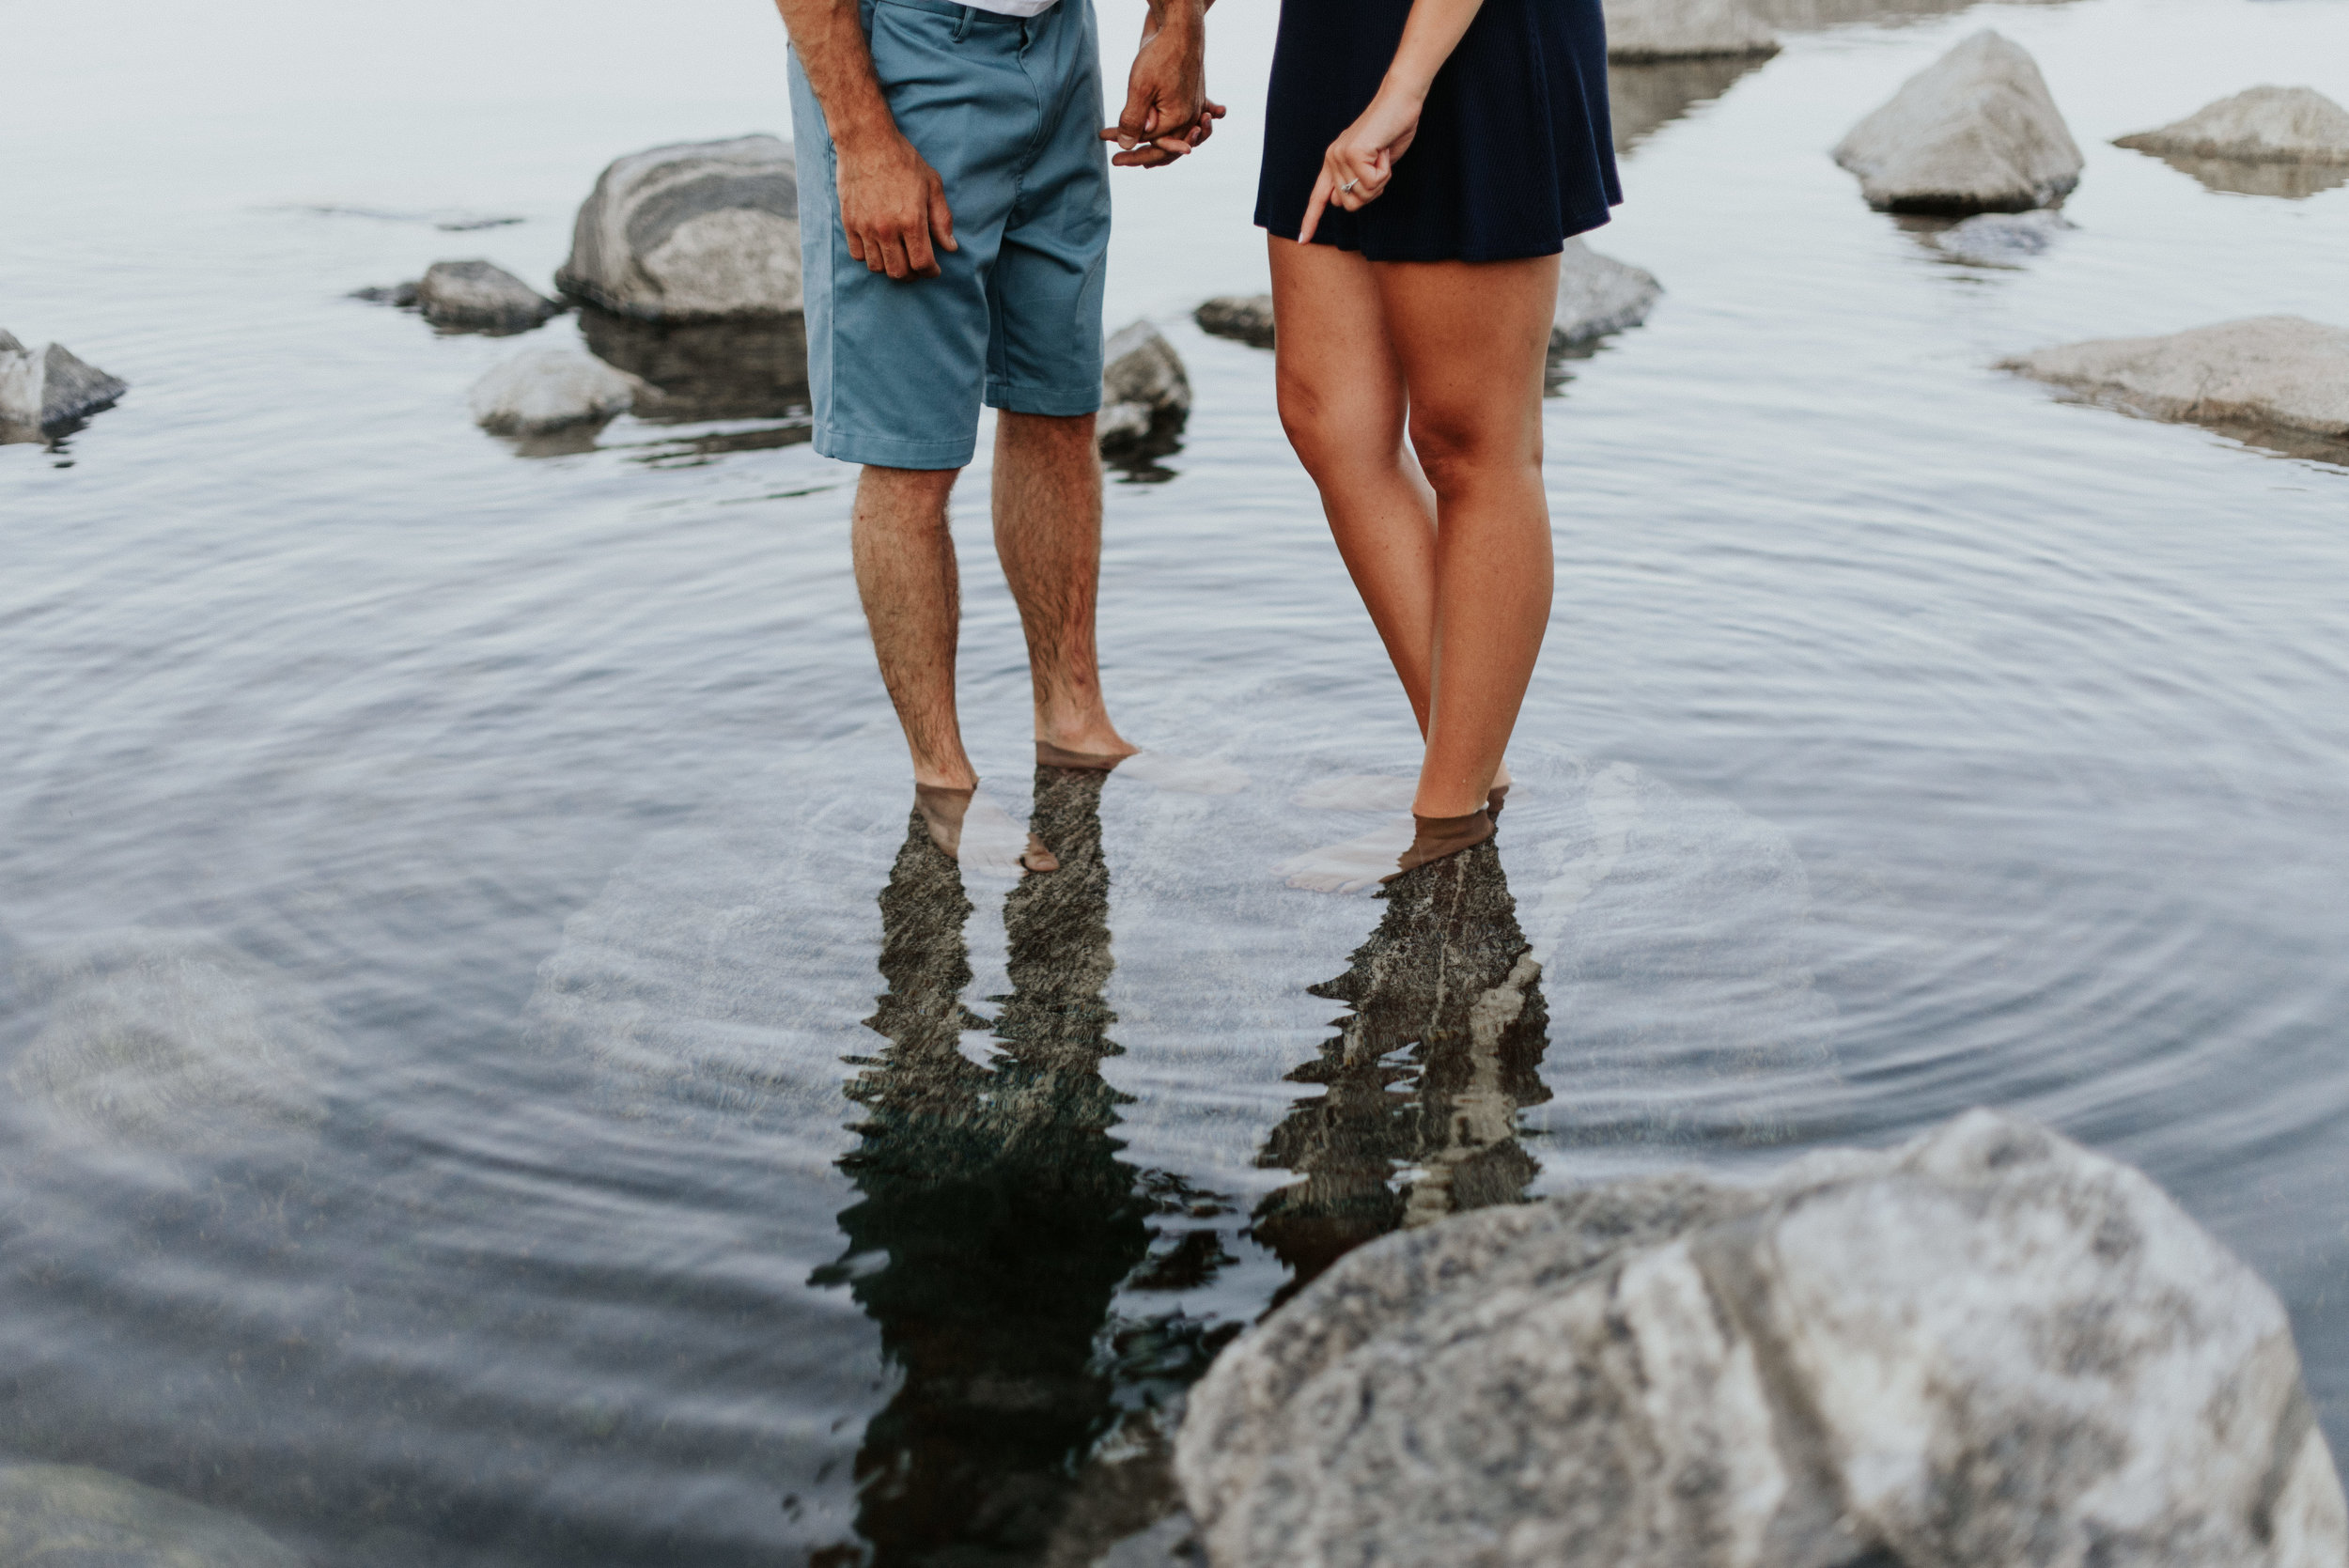 Amanda & Sean-Massachusetts-Forest Waterfront Engagement Session-Woodsy Outdoor Couples Session-Photographer-276.jpg